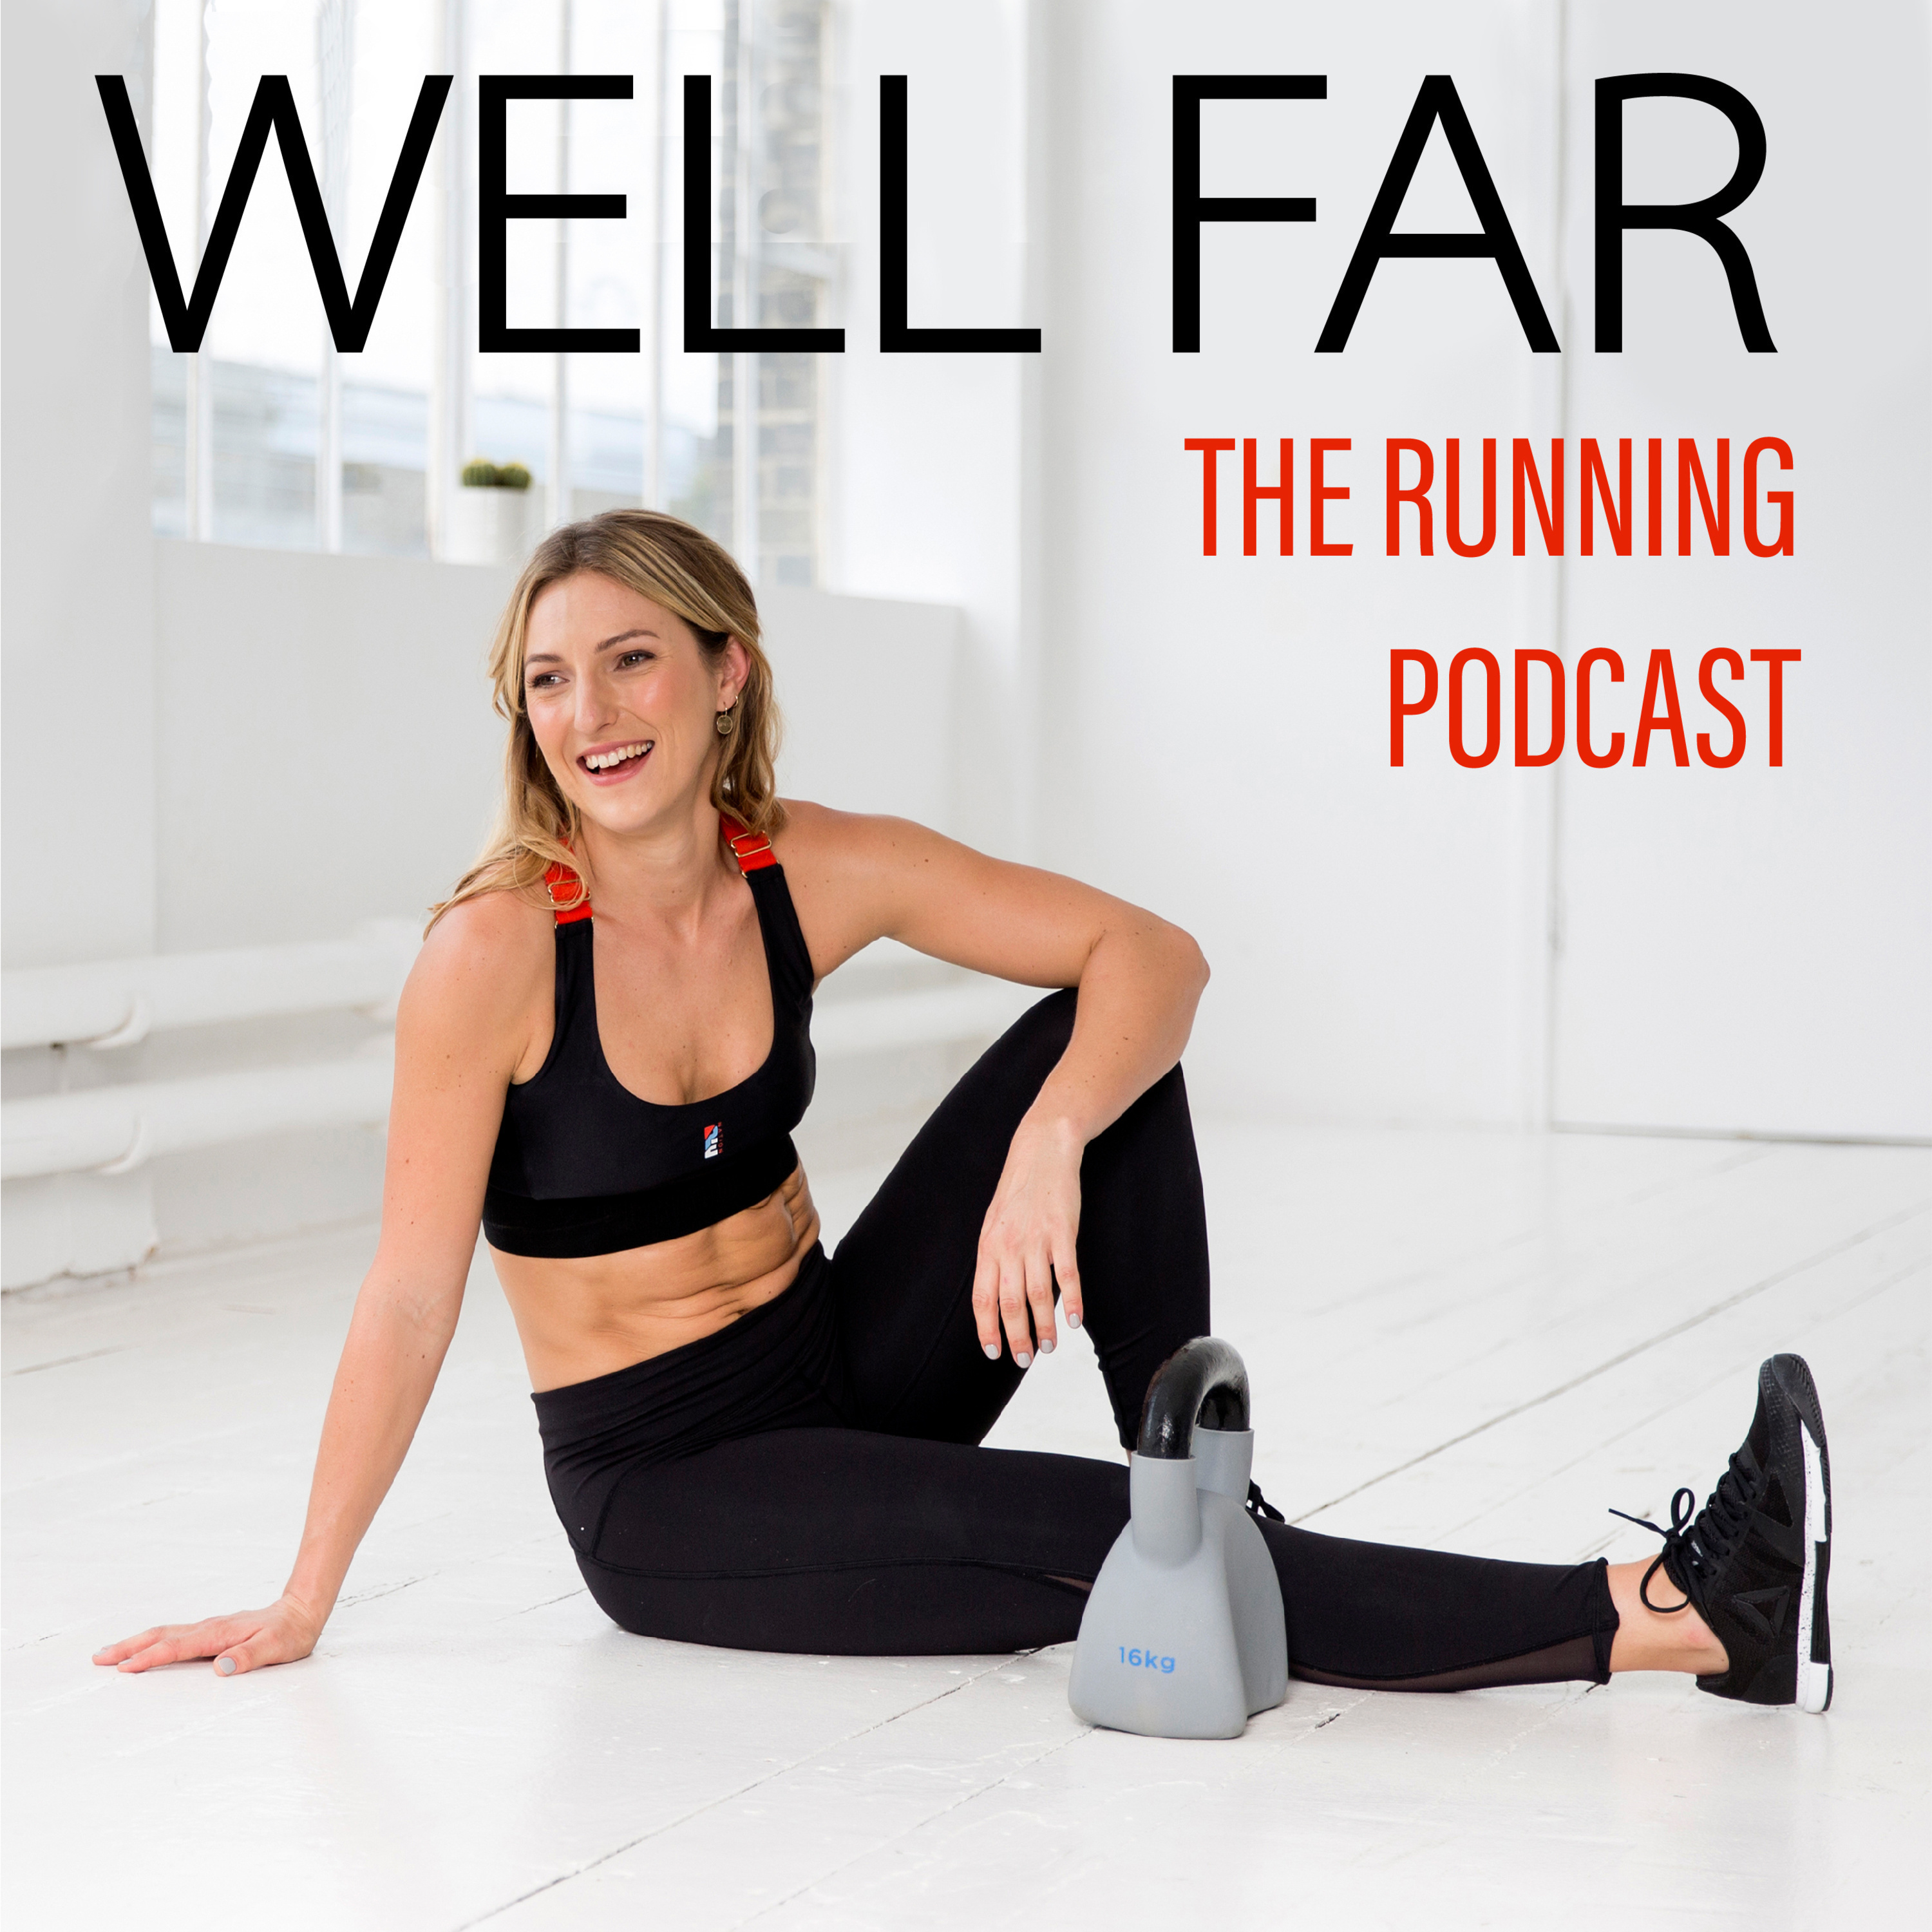 Tackling running injuries and sore knees with Brad Scanes, plus how Susie Chan went from beginner to ultra marathon runner